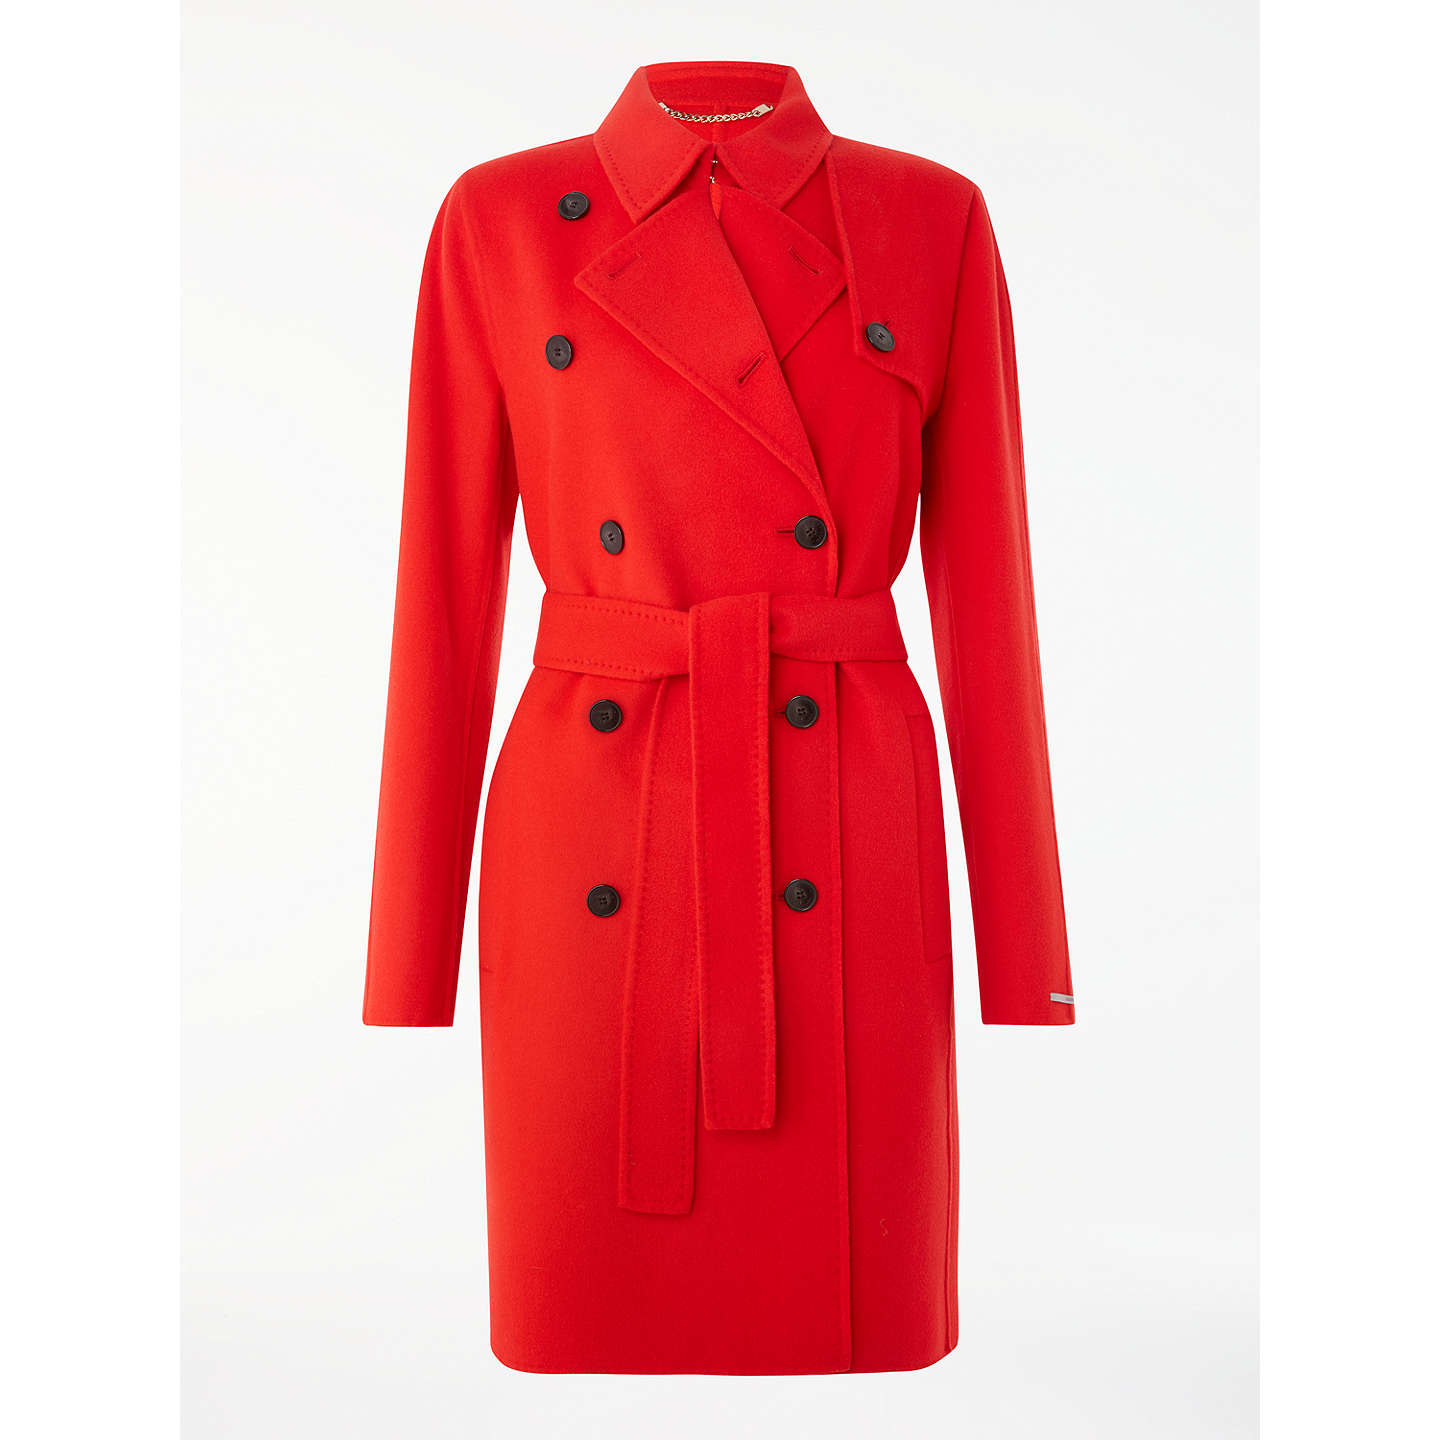 BuyMarella Blasy Trench Coat, Red, 8 Online at johnlewis.com